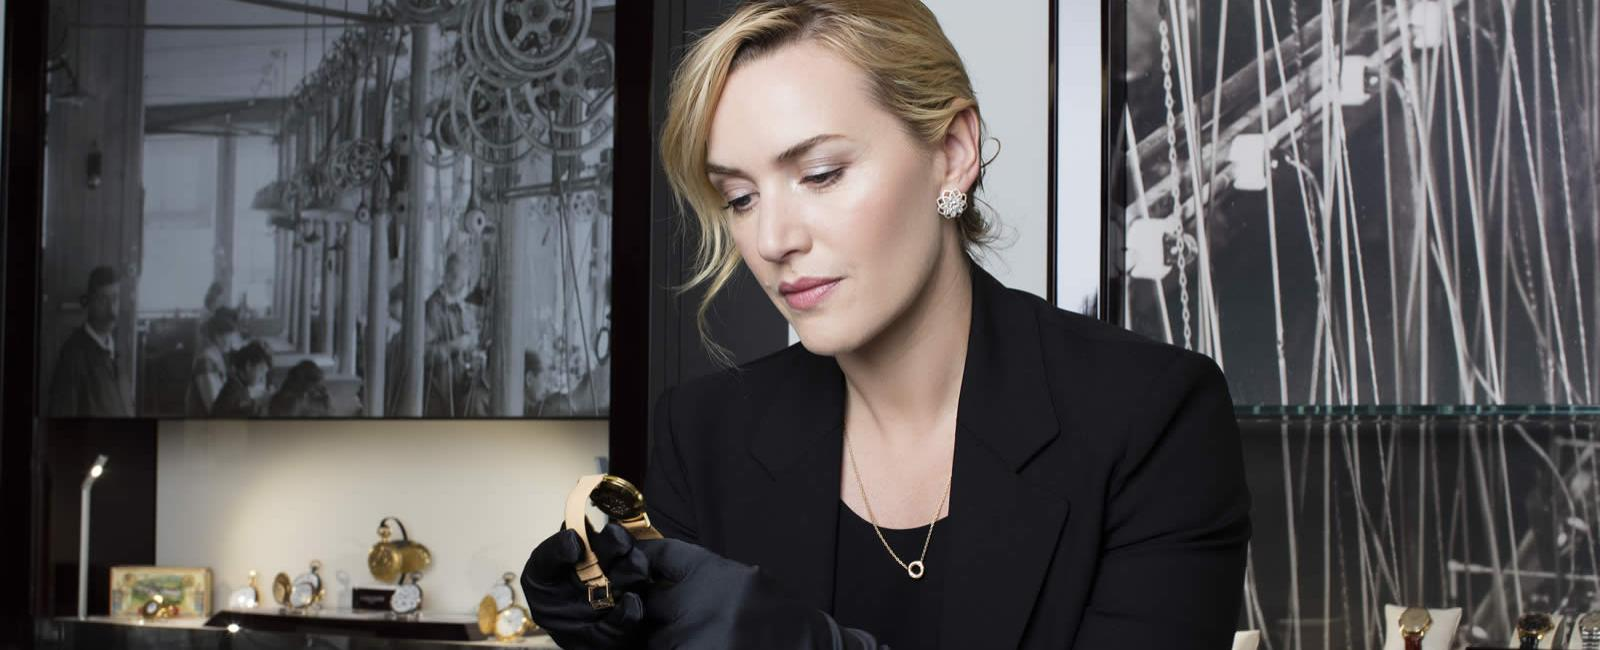 Longines honoured to welcome Ambassador of Elegance Kate Winslet to Saint-Imier